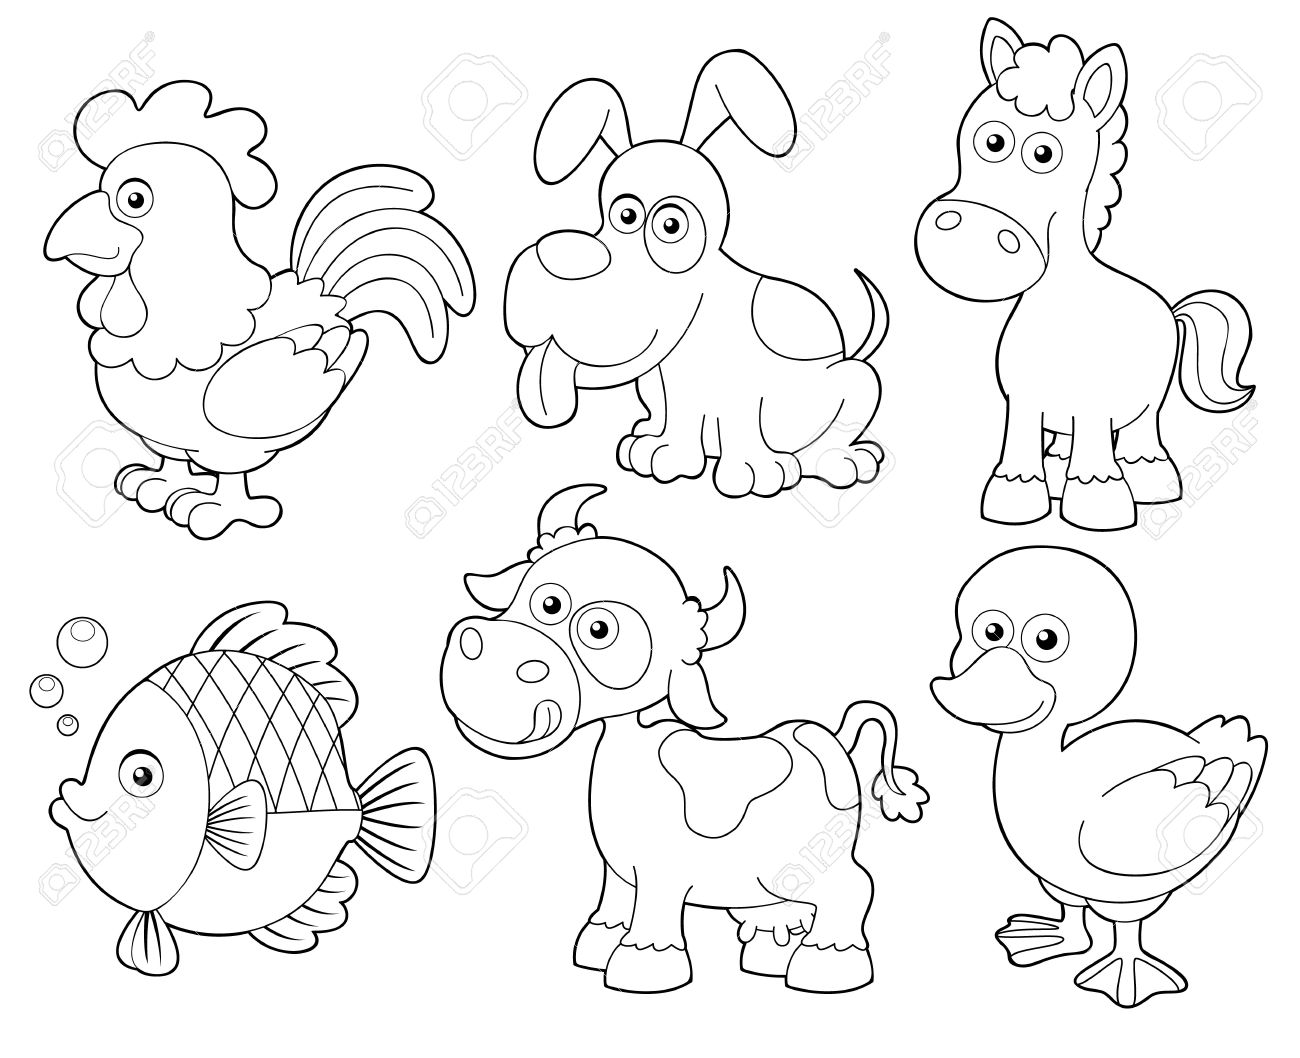 Illustration Of Farm Animals Cartoon Coloring Book Royalty Free ...